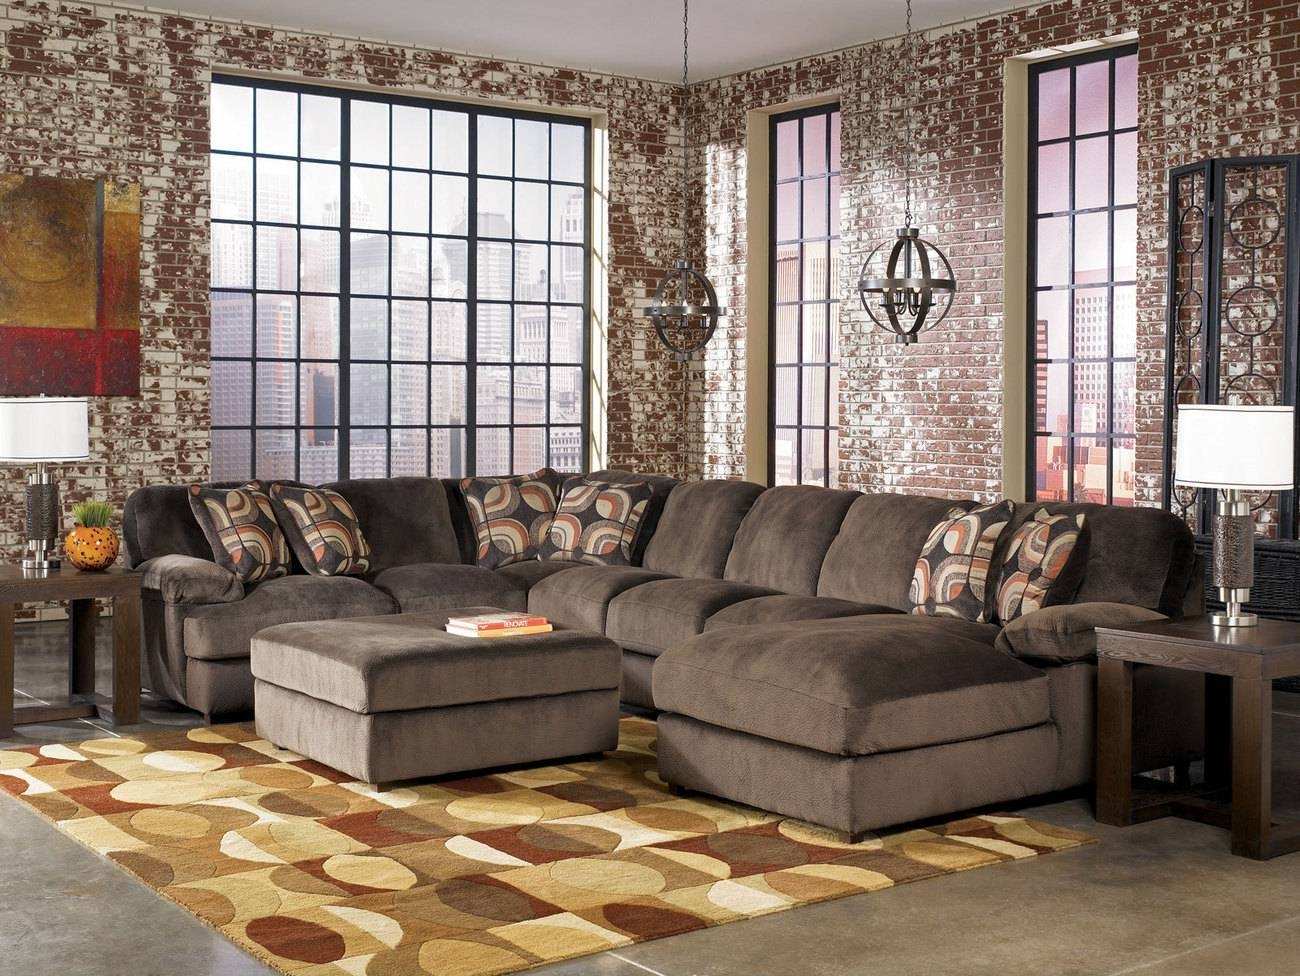 Furniture: Sectional Couch For Sale | L Shaped Couch | Extra Large with regard to Large Sofa Sectionals (Image 17 of 25)